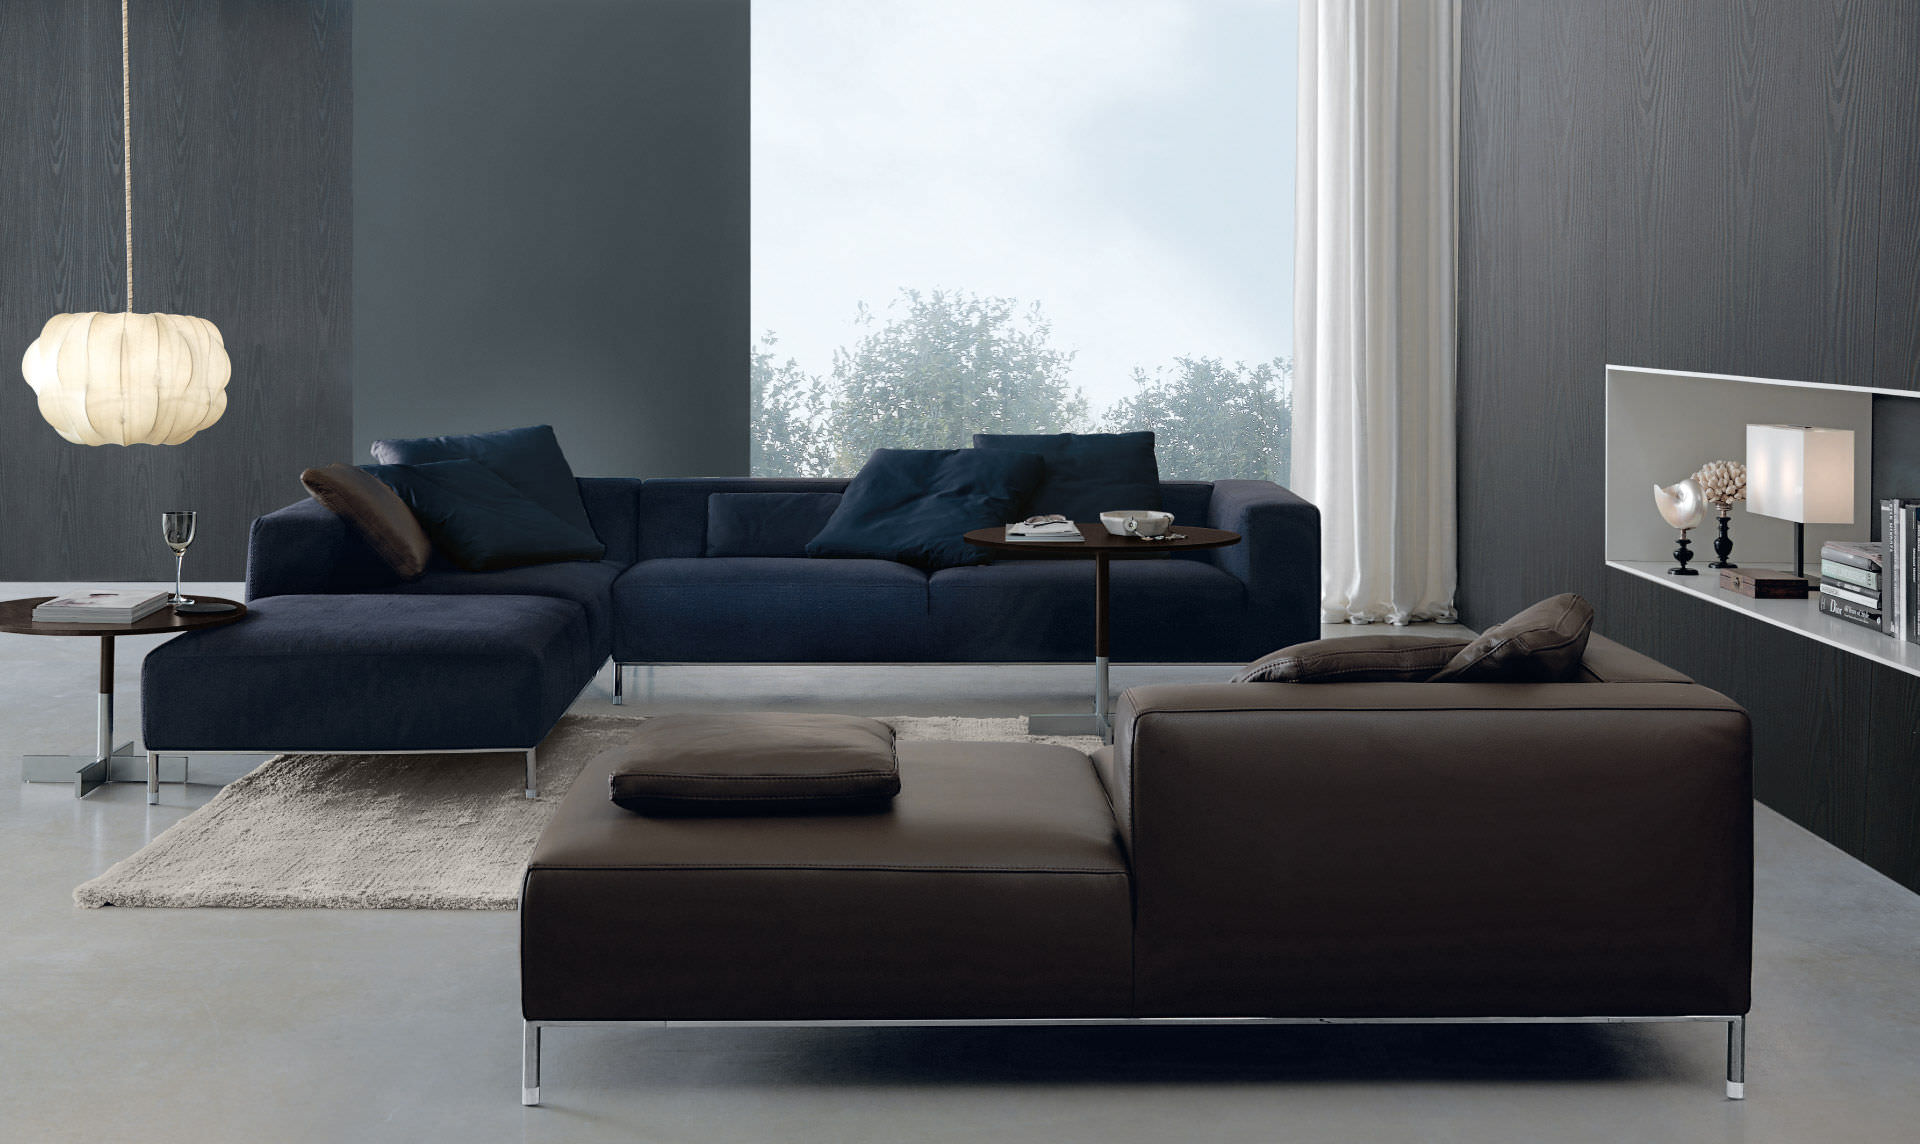 Contemporary Sofa / Polyurethane / 4 Seater / Blue   MARTIN By Graziella  Trabattoni